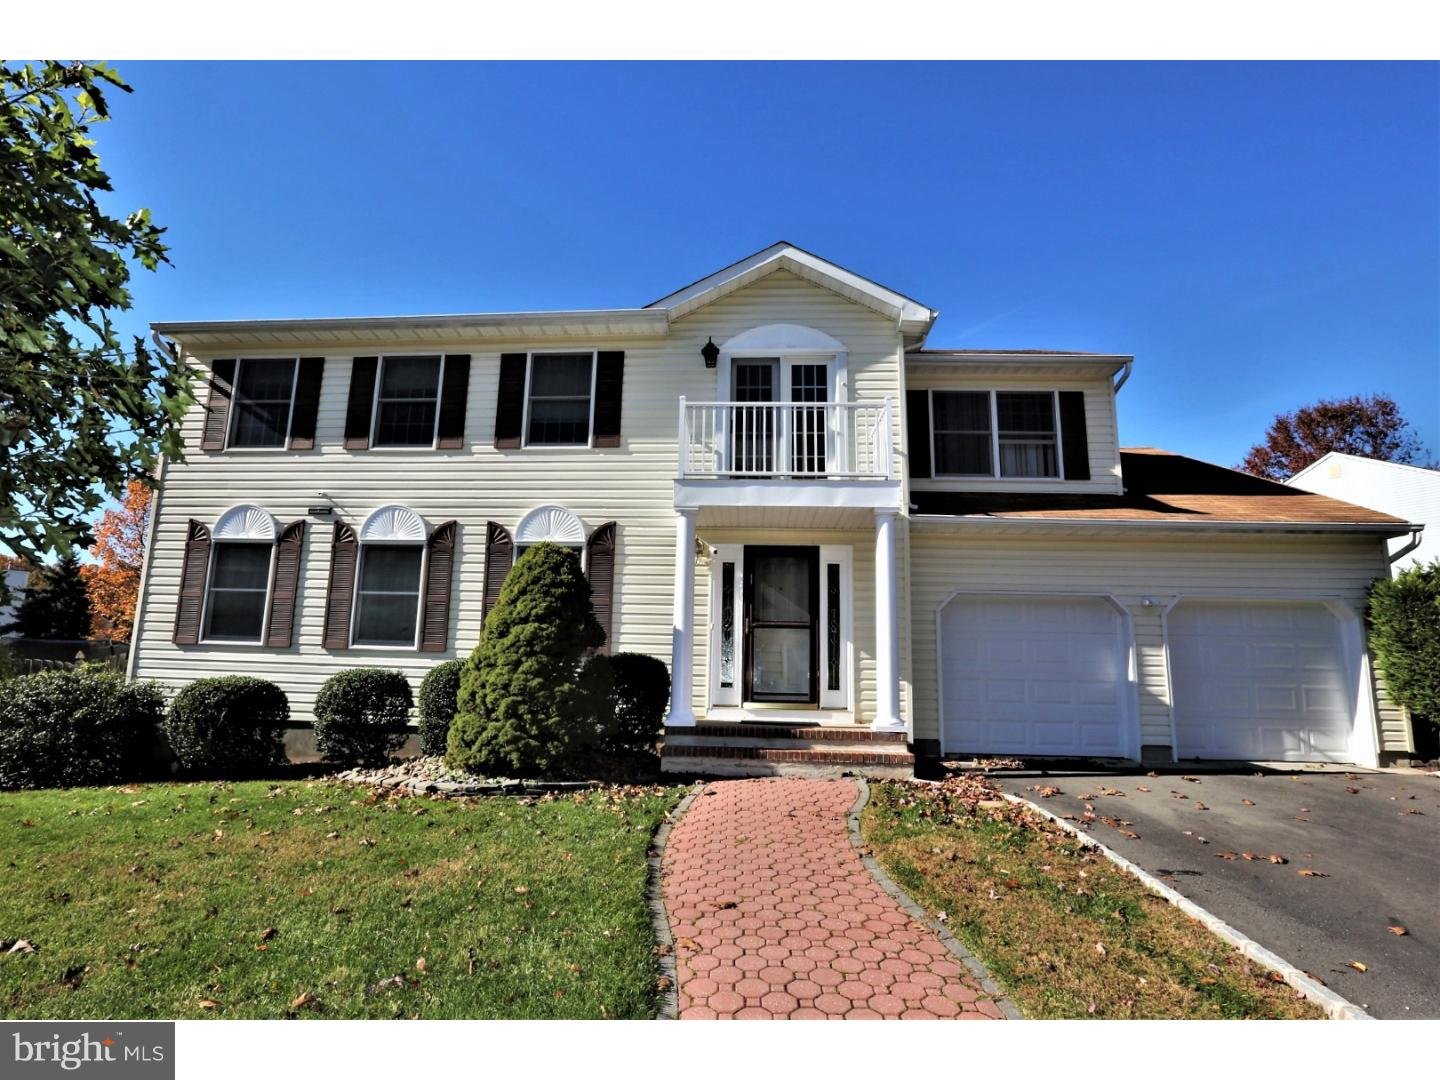 38 ESSEX DRIVE, MONMOUTH JCT, NJ 08852